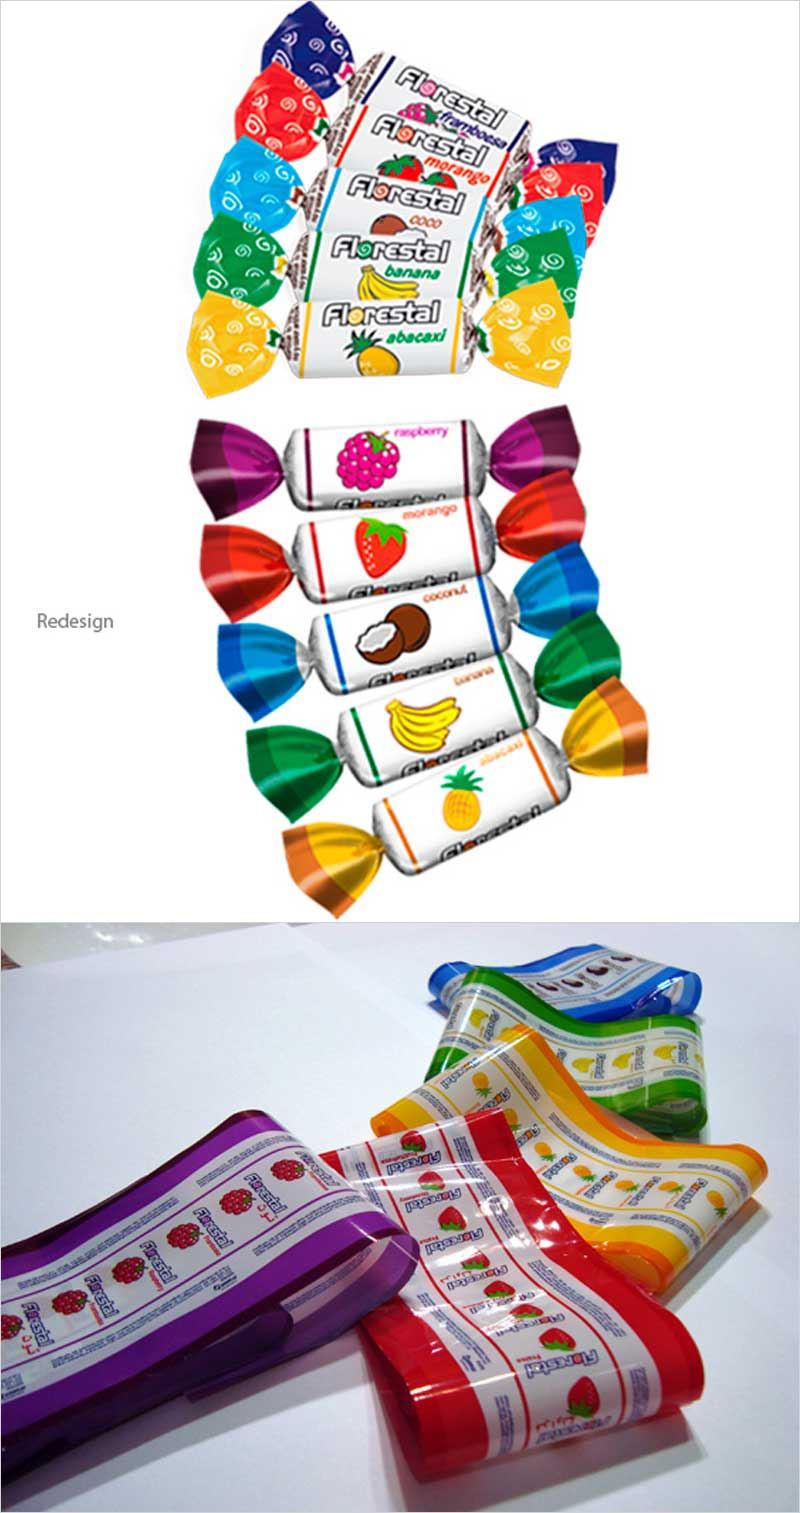 Redesign-of-Florestal-Candy-Packaging